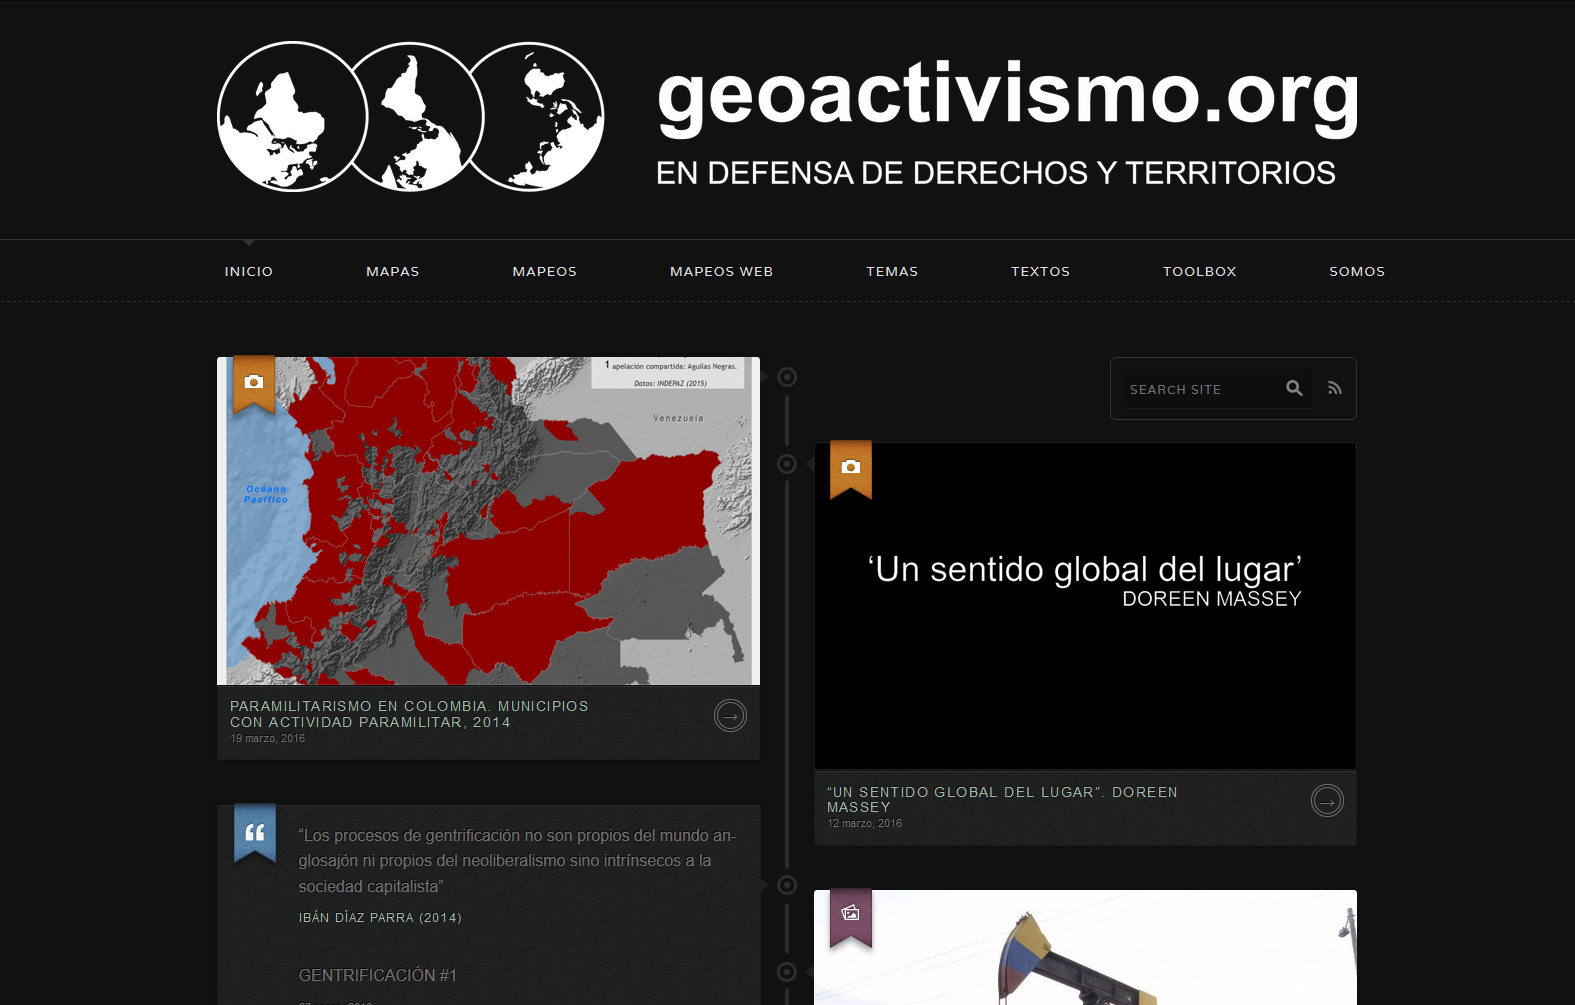 geoactivismo_org